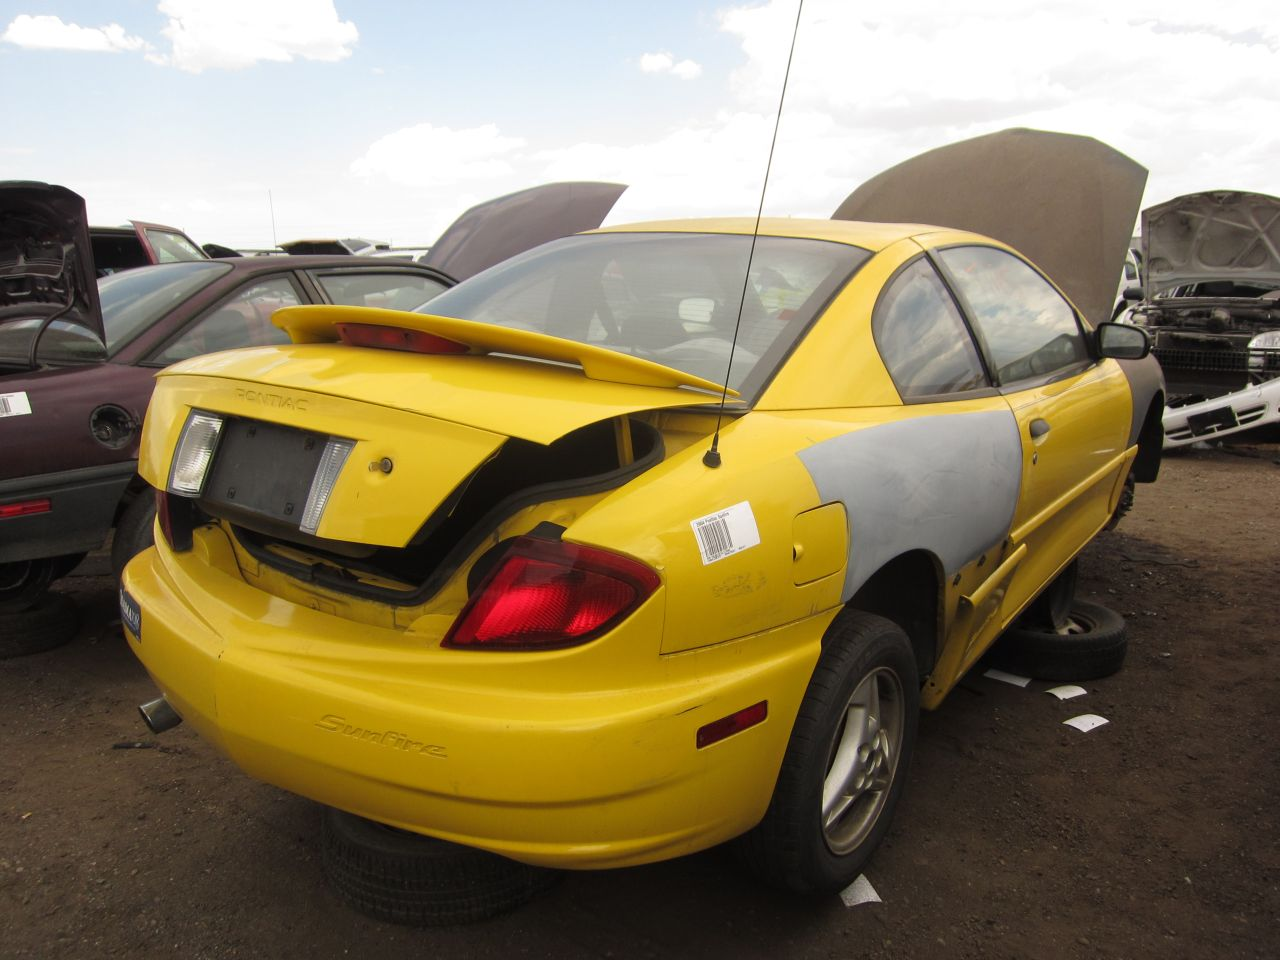 06 2004 pontiac sunfire down on the junkyard picture by murilee martin